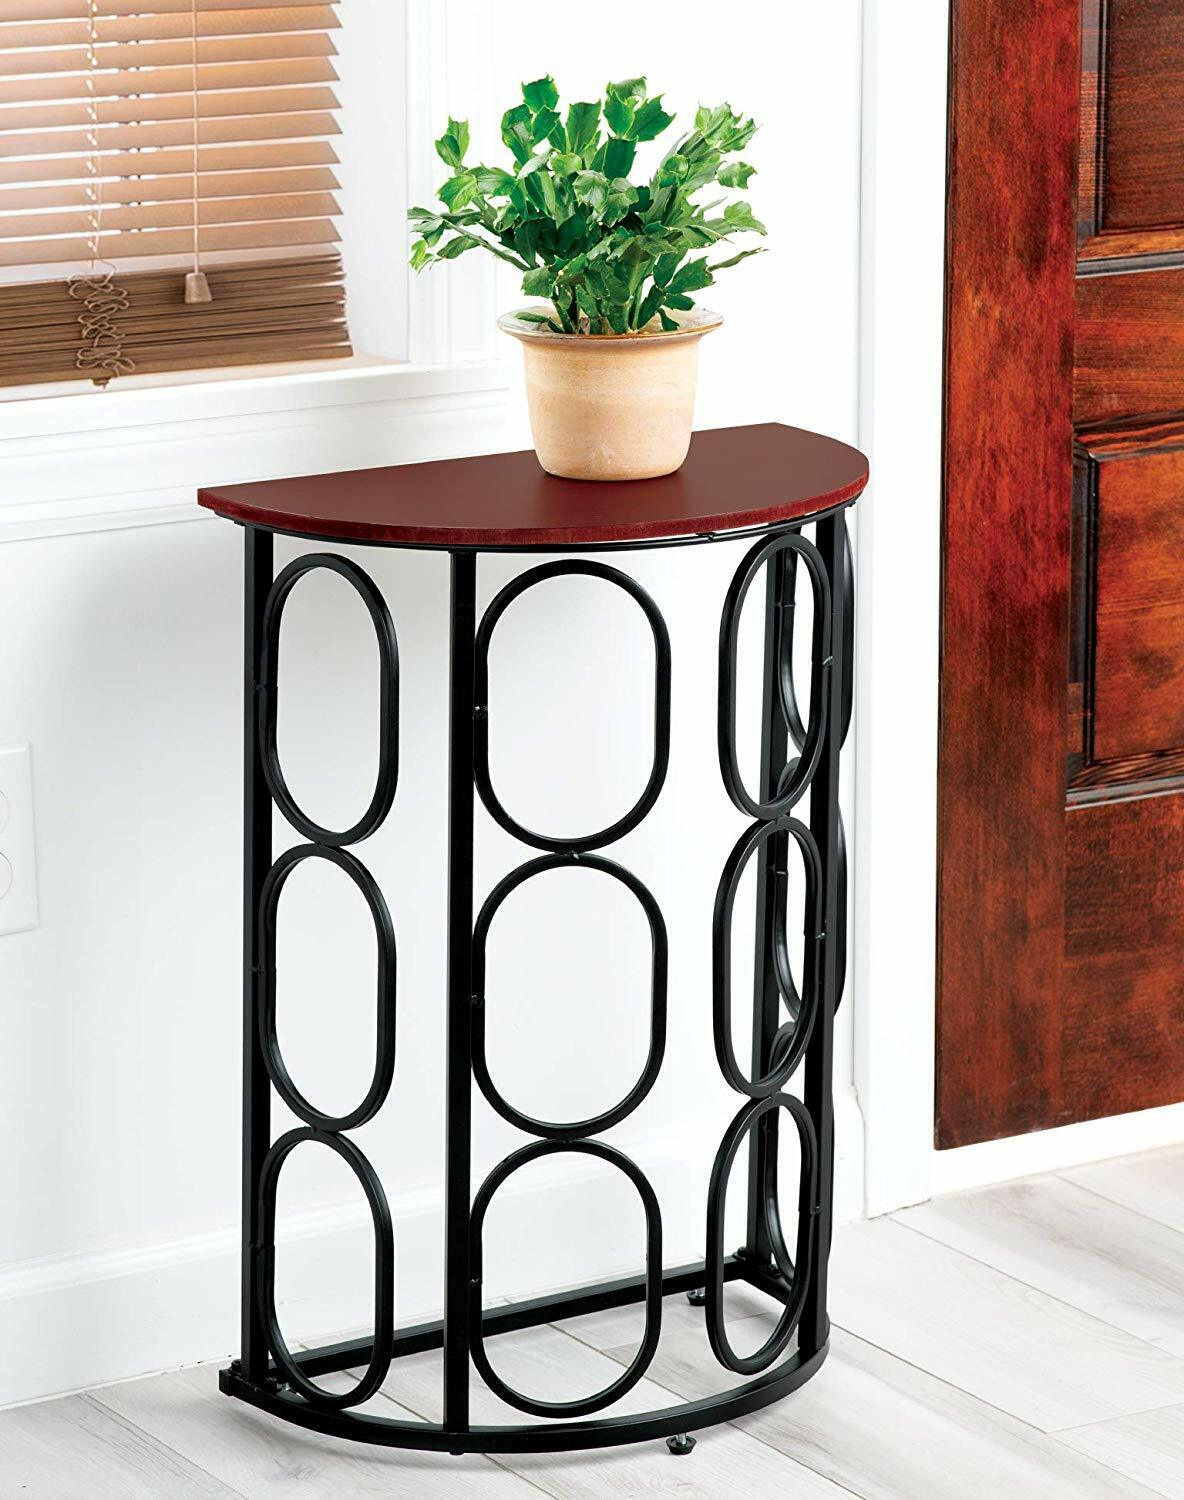 Half Moon End Table Console Metal, Wood Top Geometric Accent